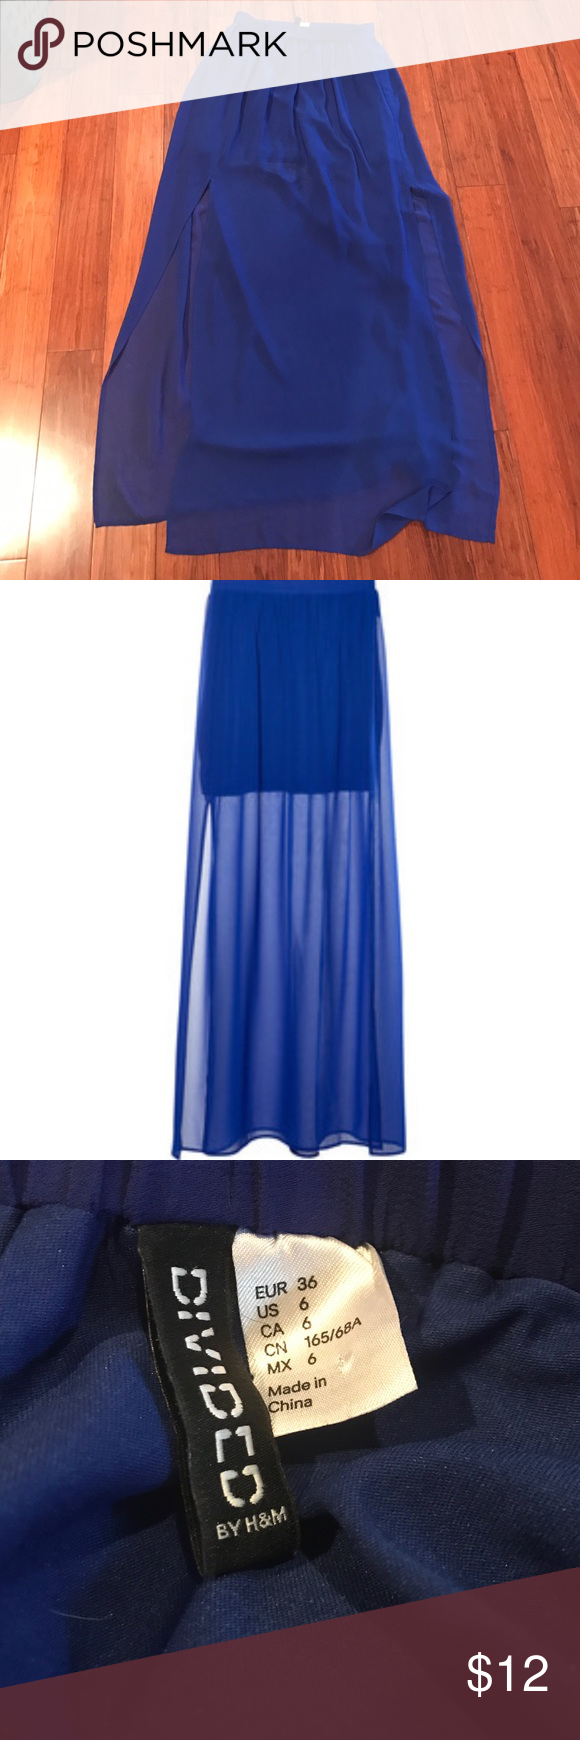 dfe1fe672b79 H&M Blue Chiffon Maxi Skirt Skirt is sheer and has liner. There is a split  on each size. In great condition! H&M Skirts Maxi